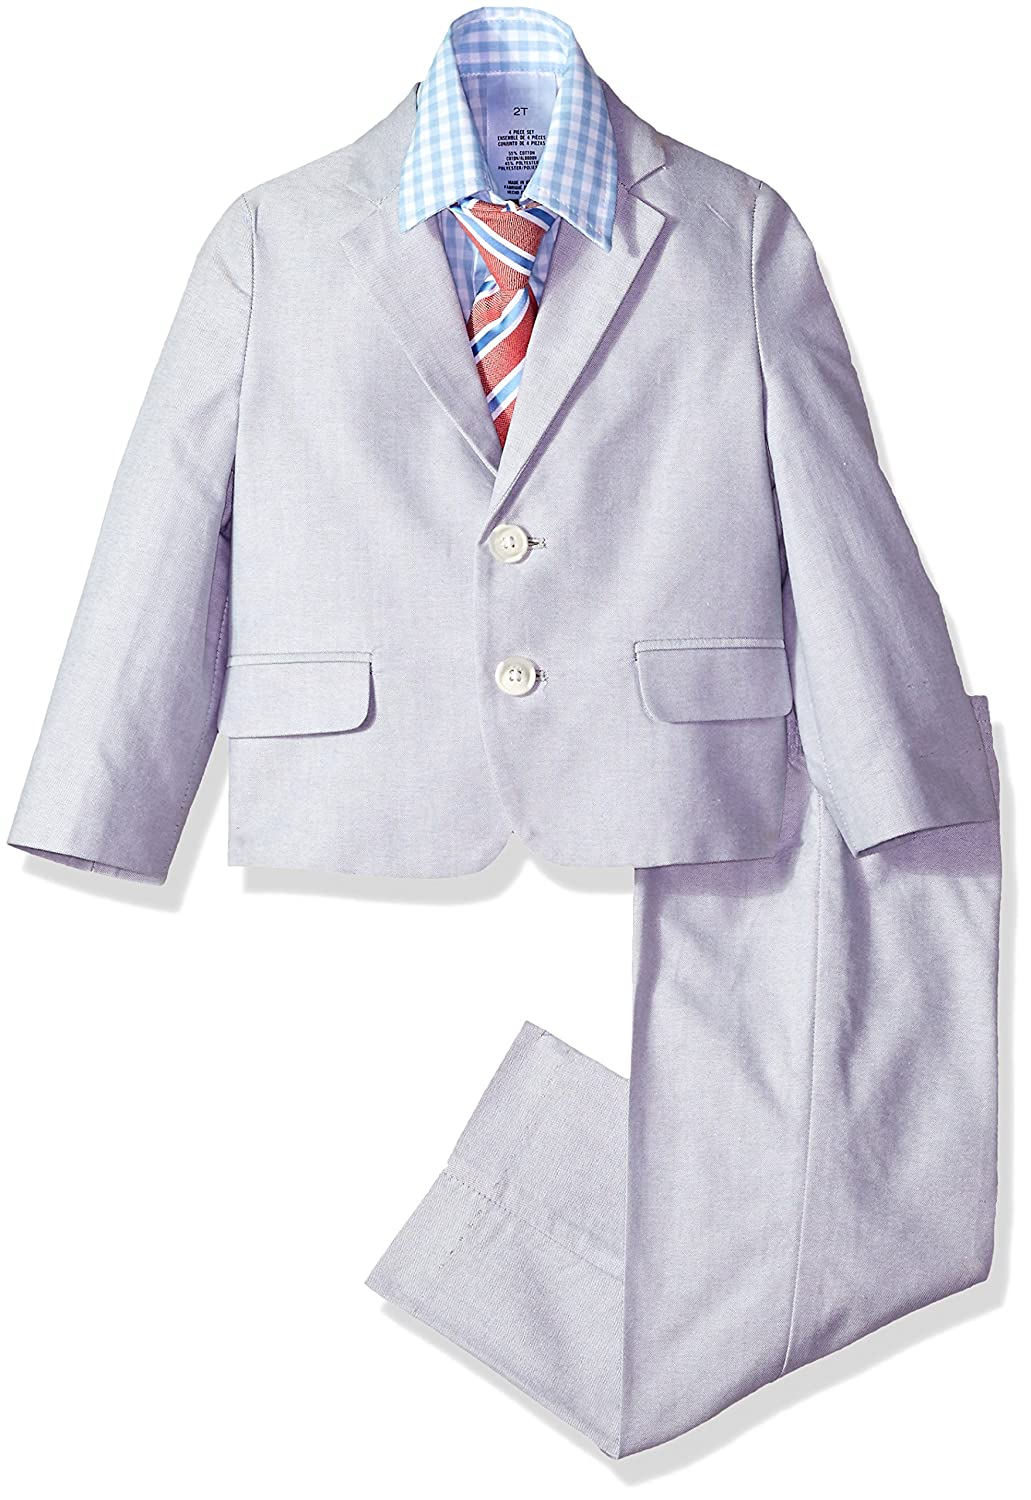 5701bfbcf Four-piece dress set featuring two-button jacket, elastic-waist pant,  pinstripe shirt, and clip-on tie